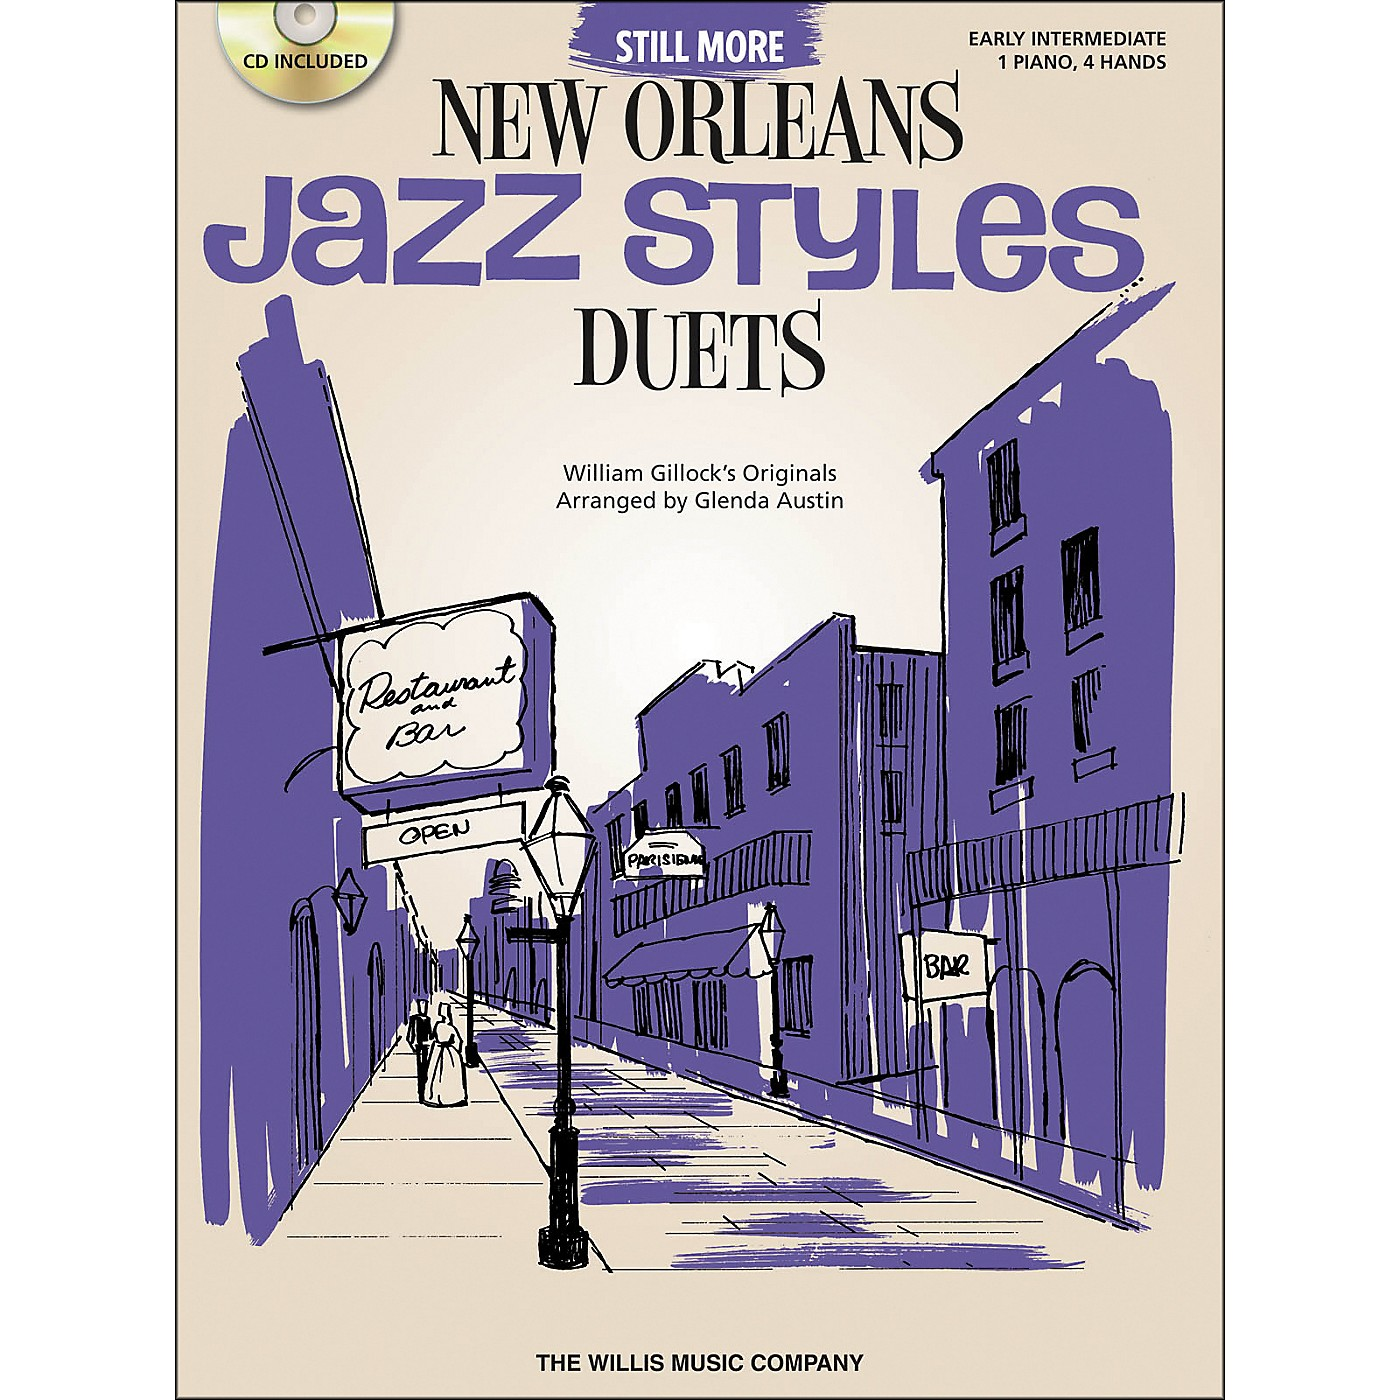 Willis Music Still More New Orleans Jazz Styles - Piano Duets (Early Intermediate 1 Piano 4 Hands) Book/CD by Glenda Austin thumbnail